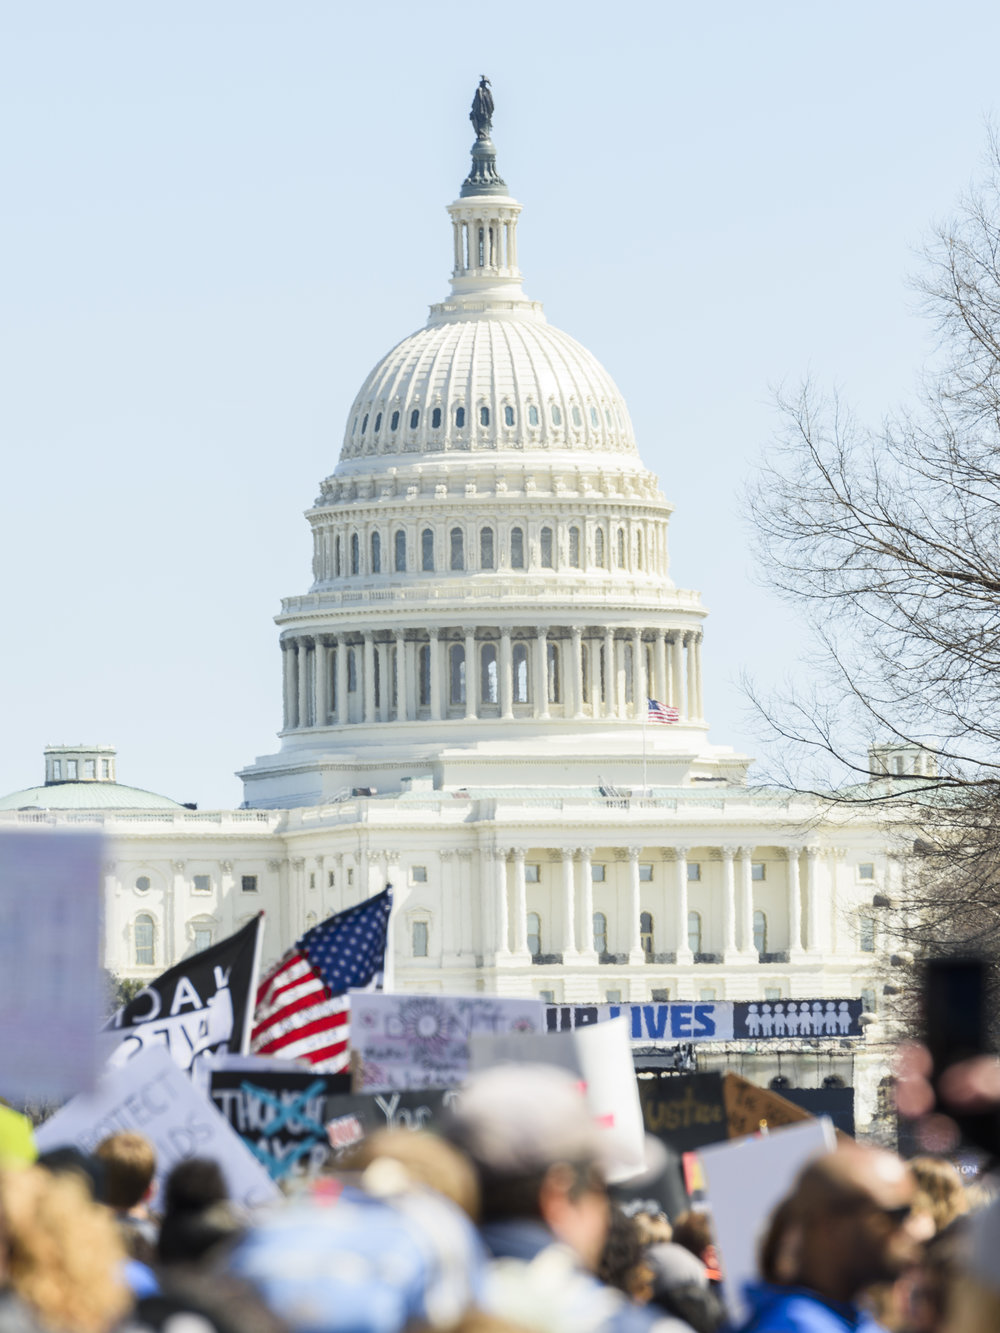 The March For Our Lives - D.C. - March 24th, 2018